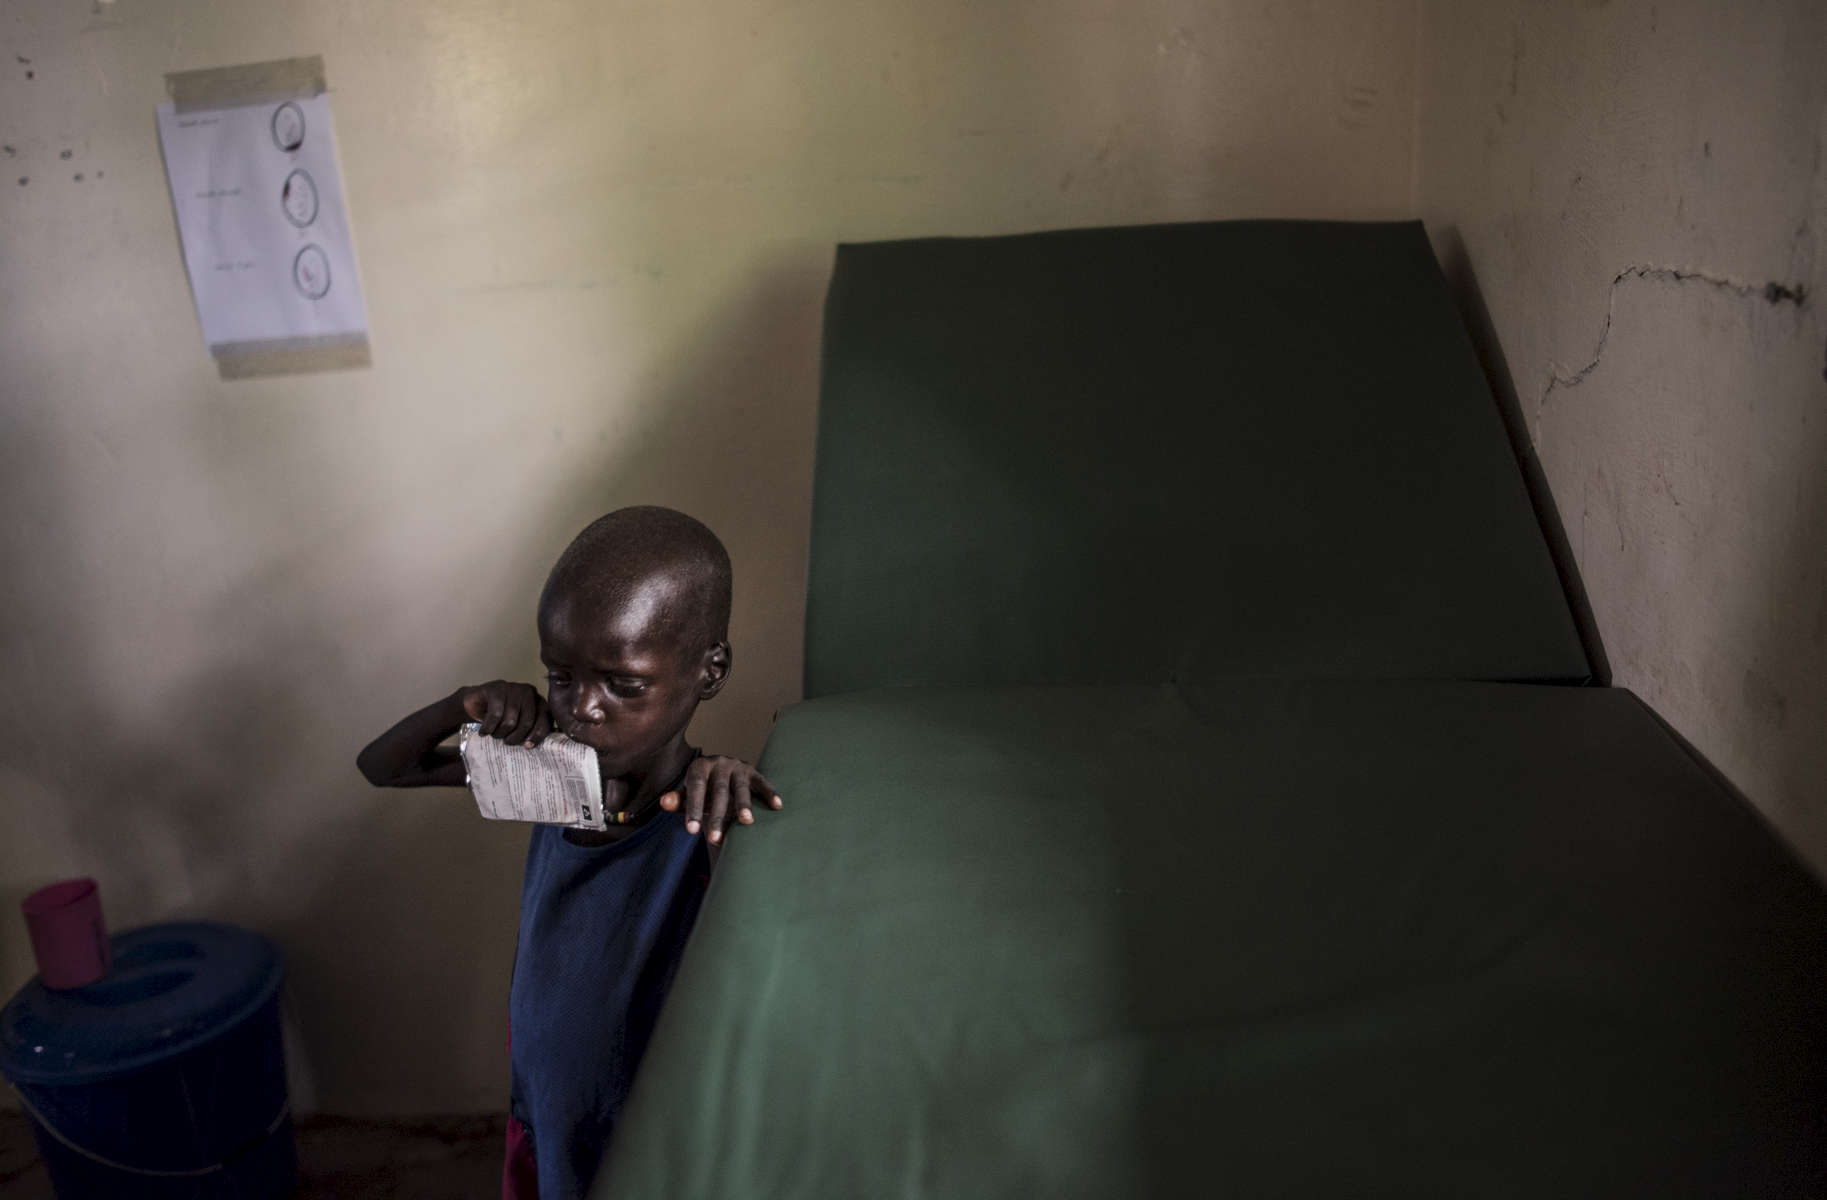 A severely malnourished boy eats a nutrient and calorie-rich packet of food while being treated by medical staff from Doctors without Borders at the MSF hospital in Leer, in Unity State, South Sudan, March 18, 2016.  When fighting raged throughout Leer in 2014 and 2015, most of the population fled, leaving civilians unable to harvest crops,and many struggling to find food. The city of Leer, once a bustling city and headquarters of opposition leader Riek Marchar, is now a ghost town reduced to rubble and the carcases of buildings. (Credit: Lynsey Addario for Time Magazine)